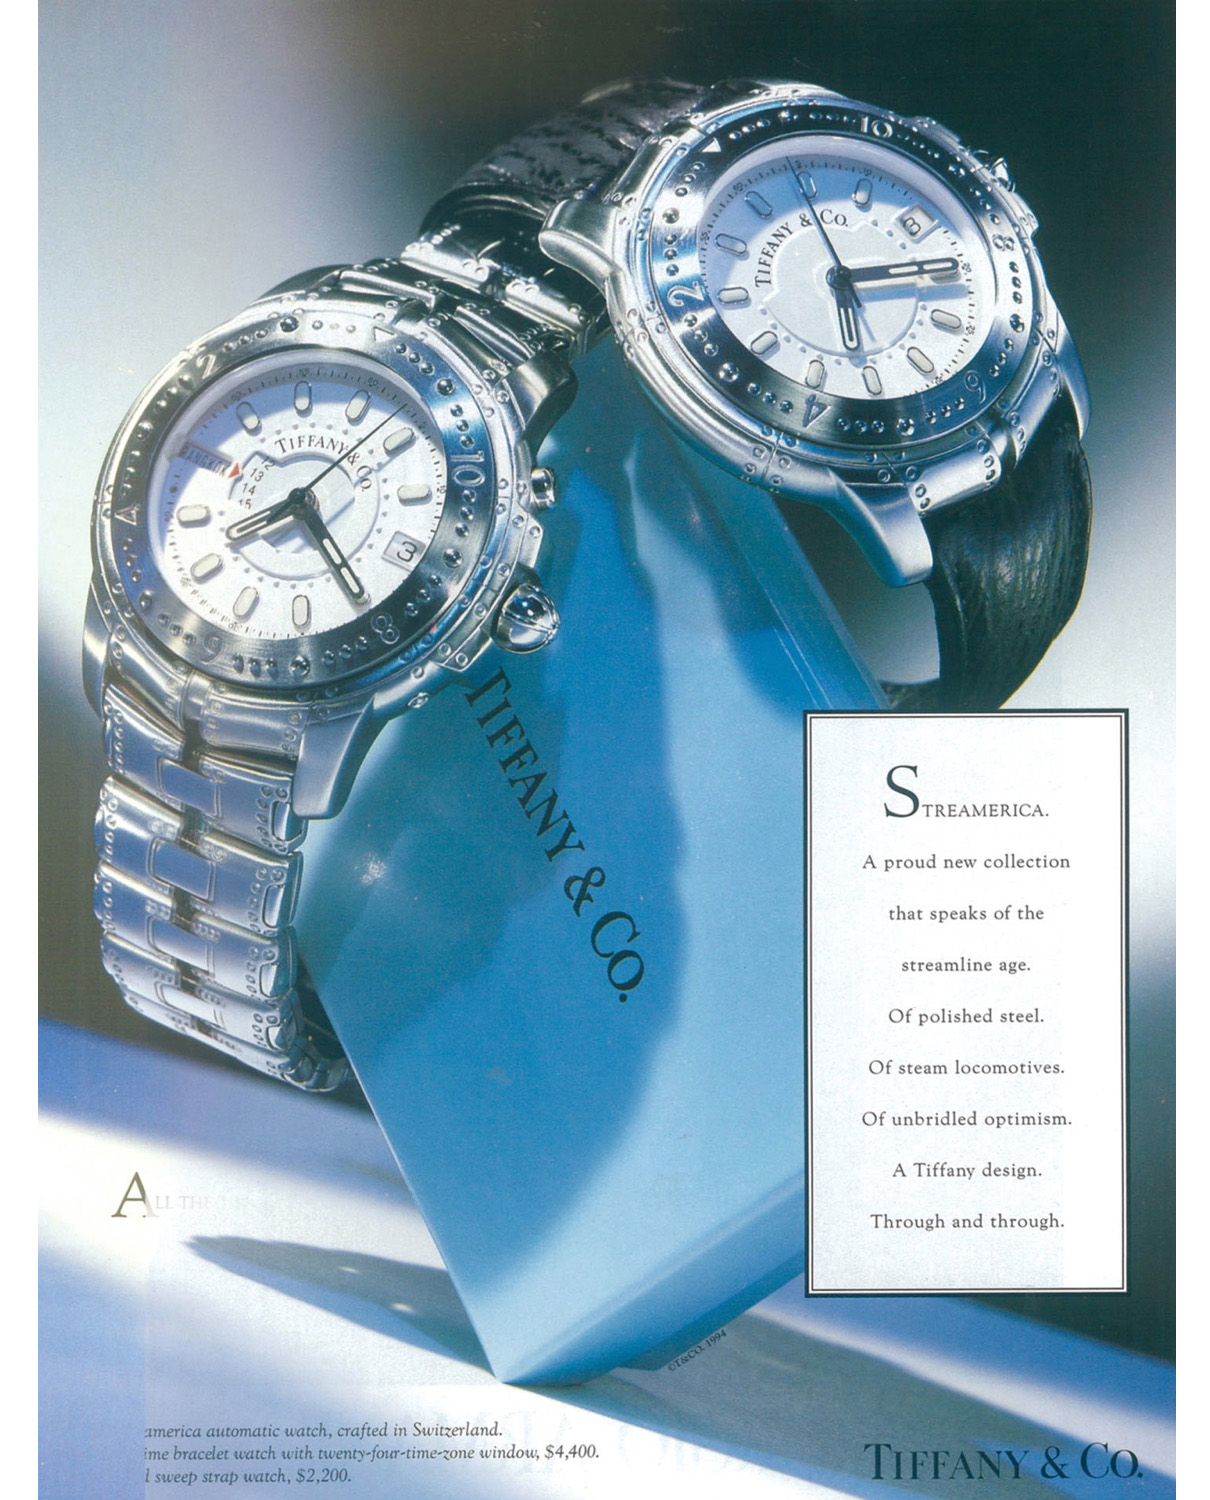 Original advertisement 1993 from Tiffany & Co. Streamerica Stainless steel World Time Automatic Watch, and Automatic Chronometer with leather band.